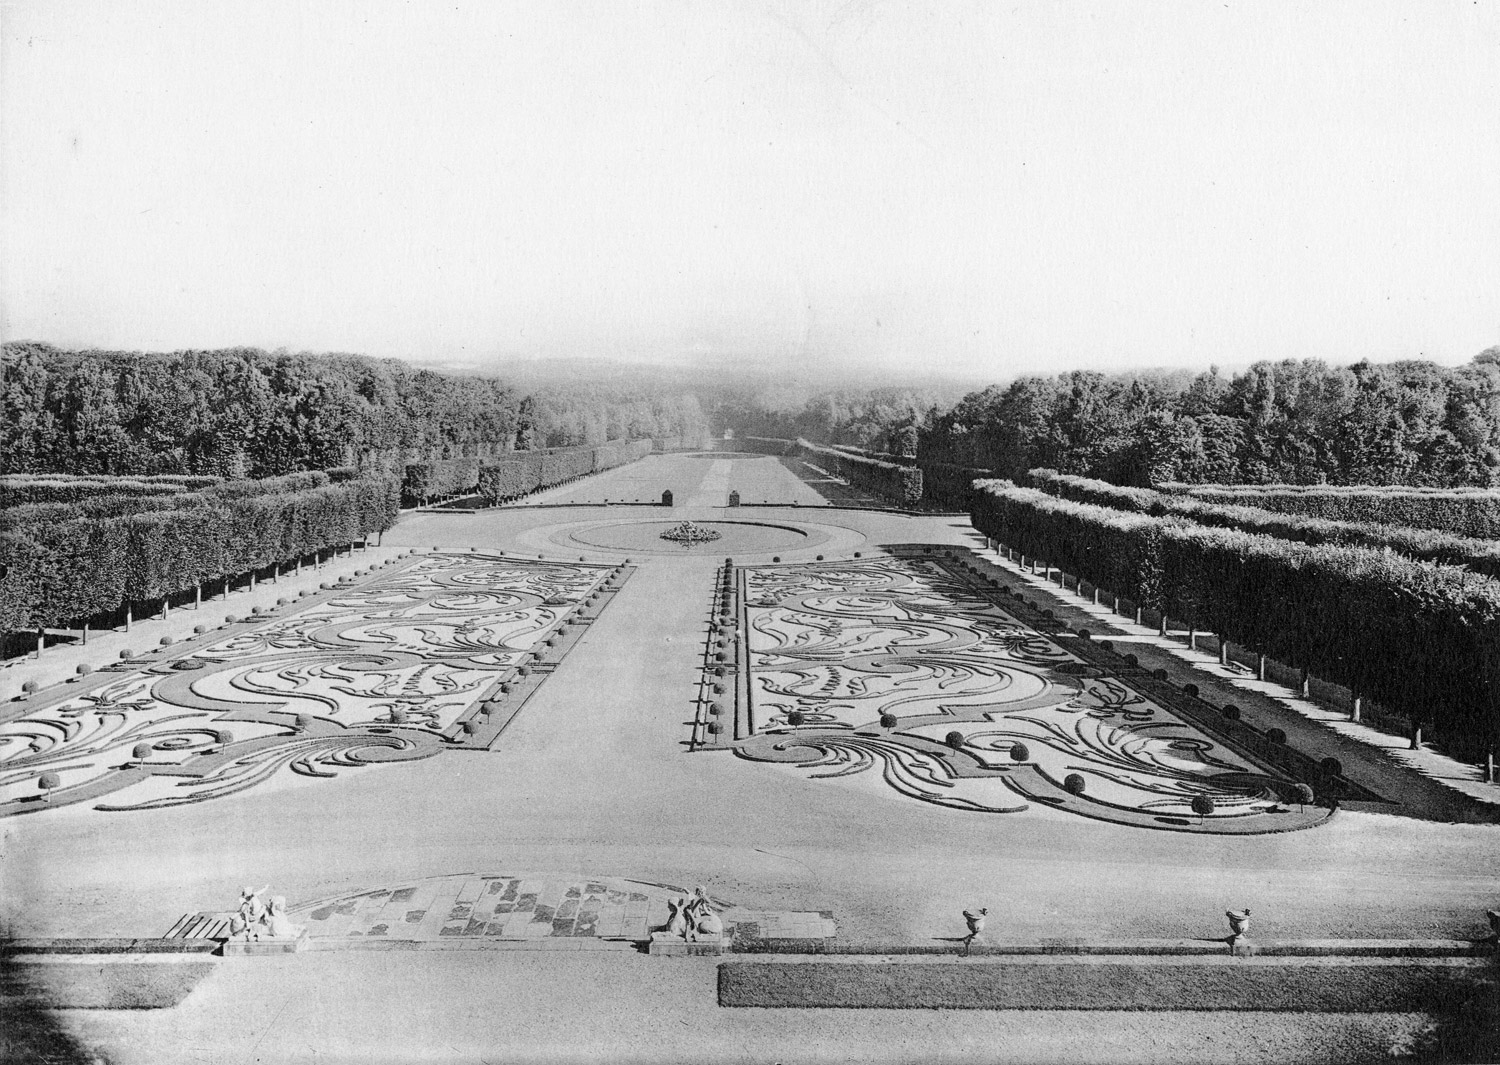 Champs, Le Parterre de Broderies, from Jardins de France by P. Pean, volumes 1 and 2, 1925. Note the manicured allees of trees, typical of French gardens of the time.